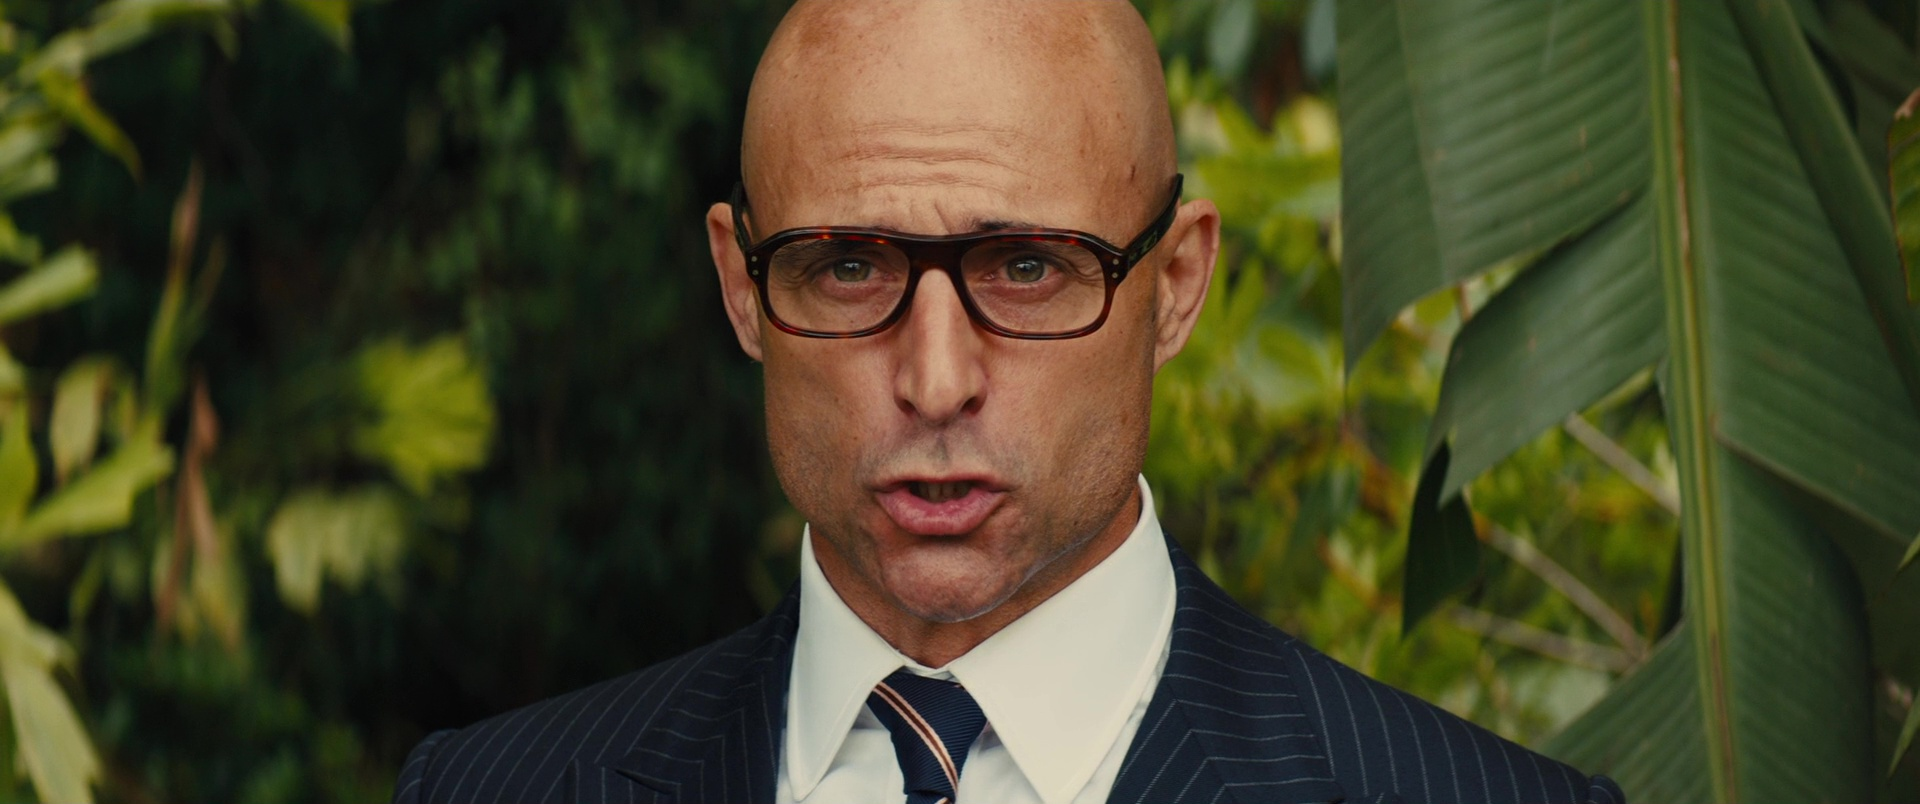 c0f5f617ac Cutler And Gross Square-Frame Tortoiseshell Acetate Optical Glasses Worn by  Mark Strong in Kingsman 2  The Golden Circle (2017)